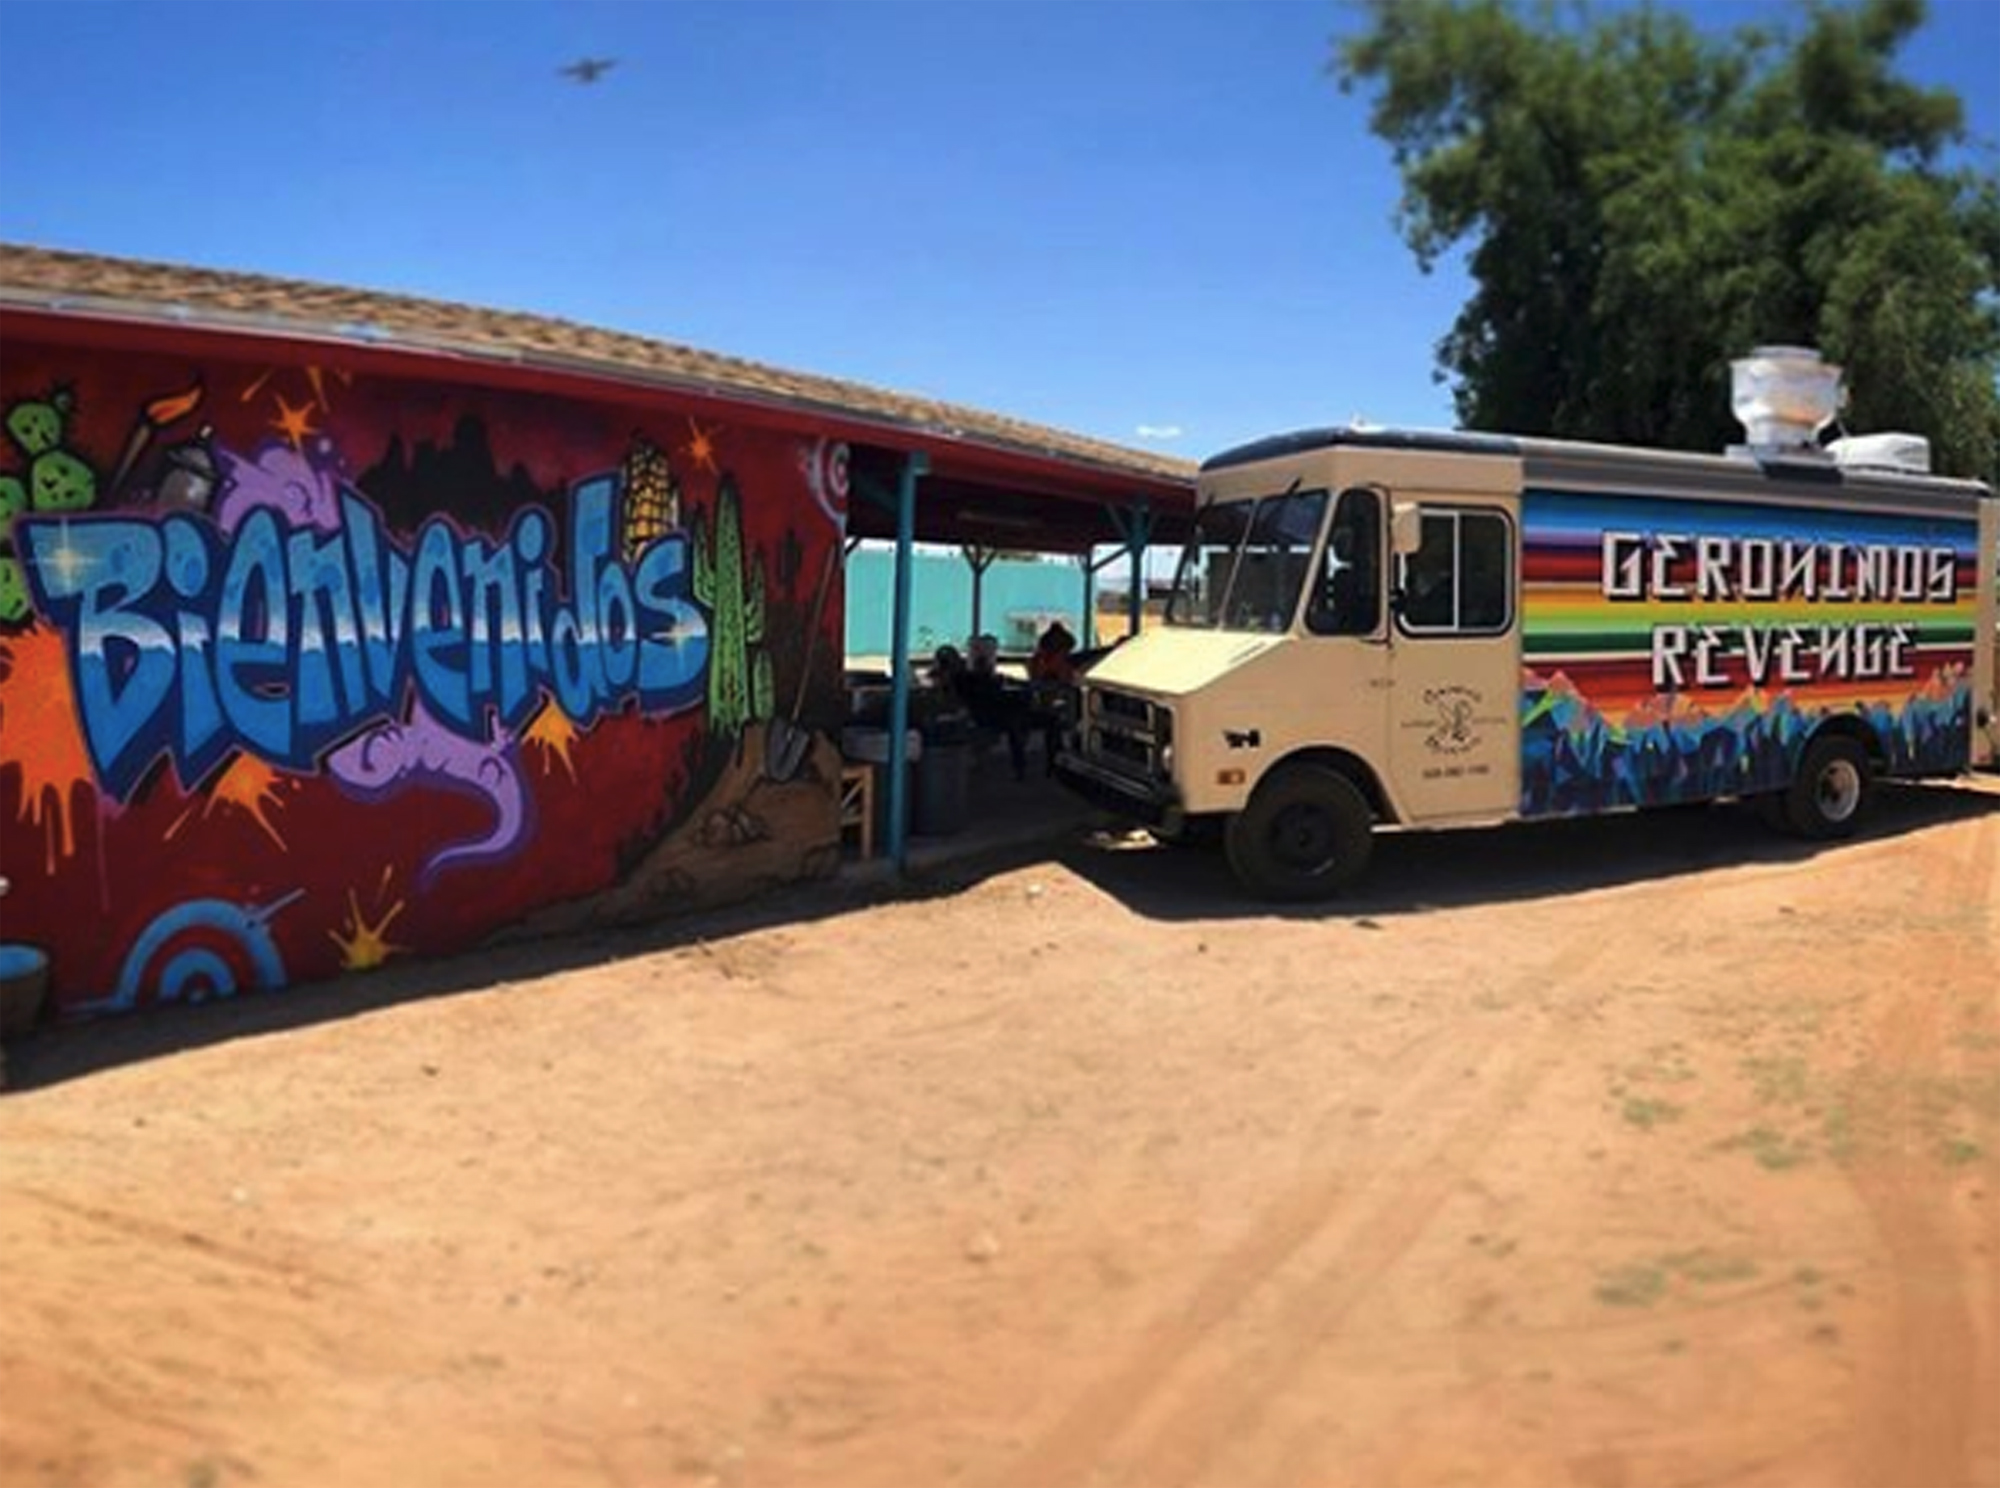 Tuscon's first locally sustainable and organic food truck sponsored by the Flowers and Bullets Collective.